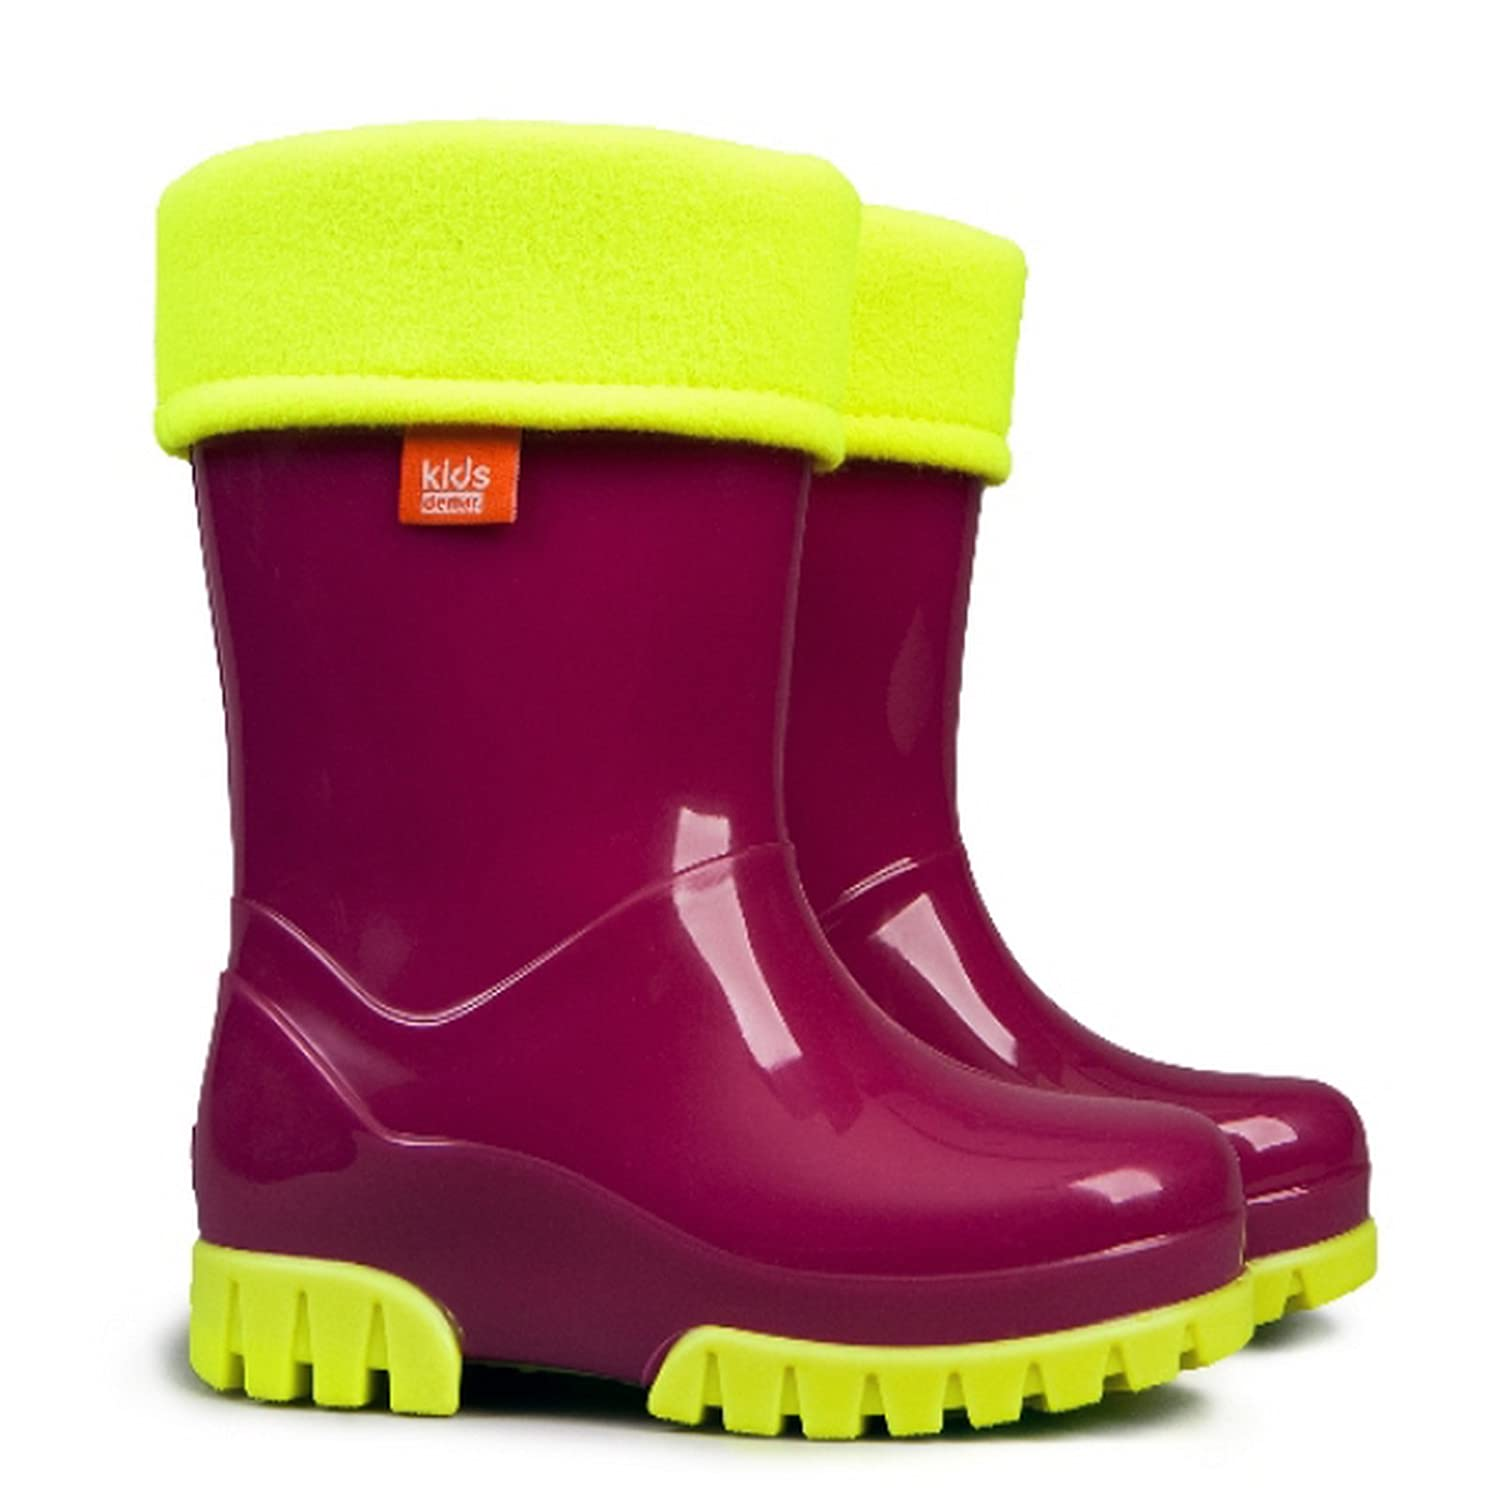 Kids Boys Girls Wellies Wellington Boots Rainy Snow Fluo Neon Thermal Liner